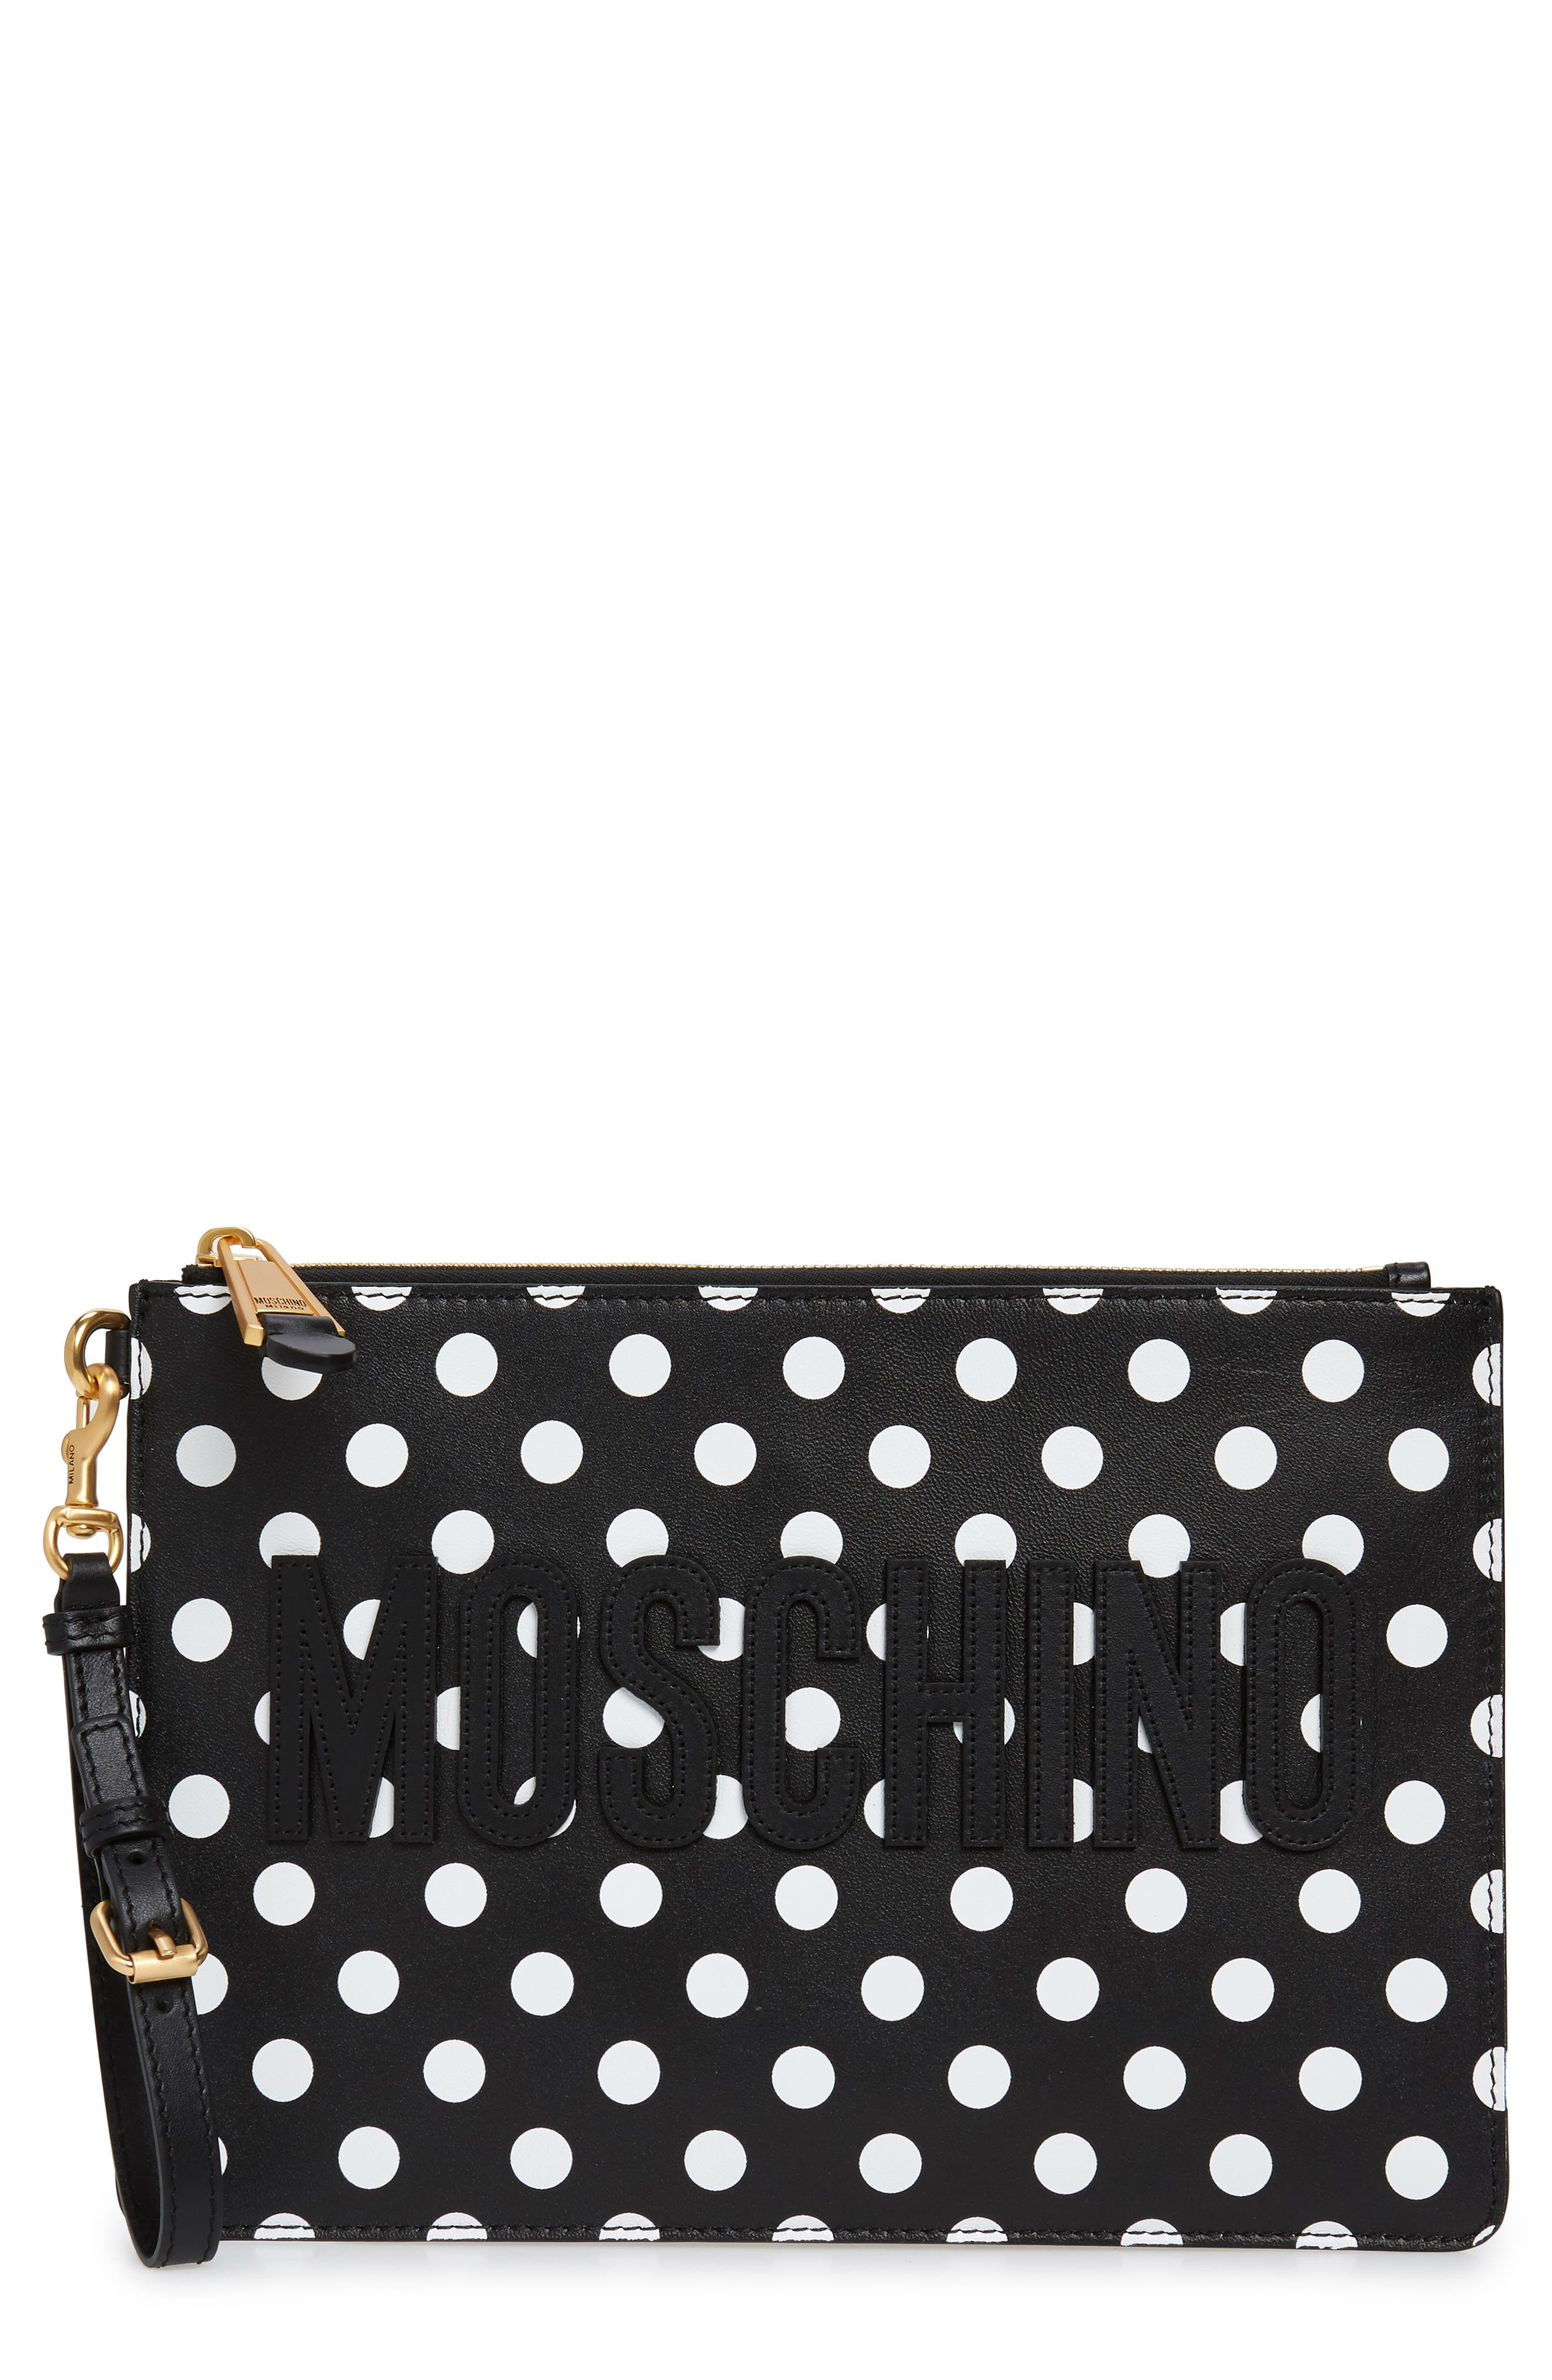 MOSCHINO Logo Polka Dot Faux Leather Pouch, Main, color, BLACK